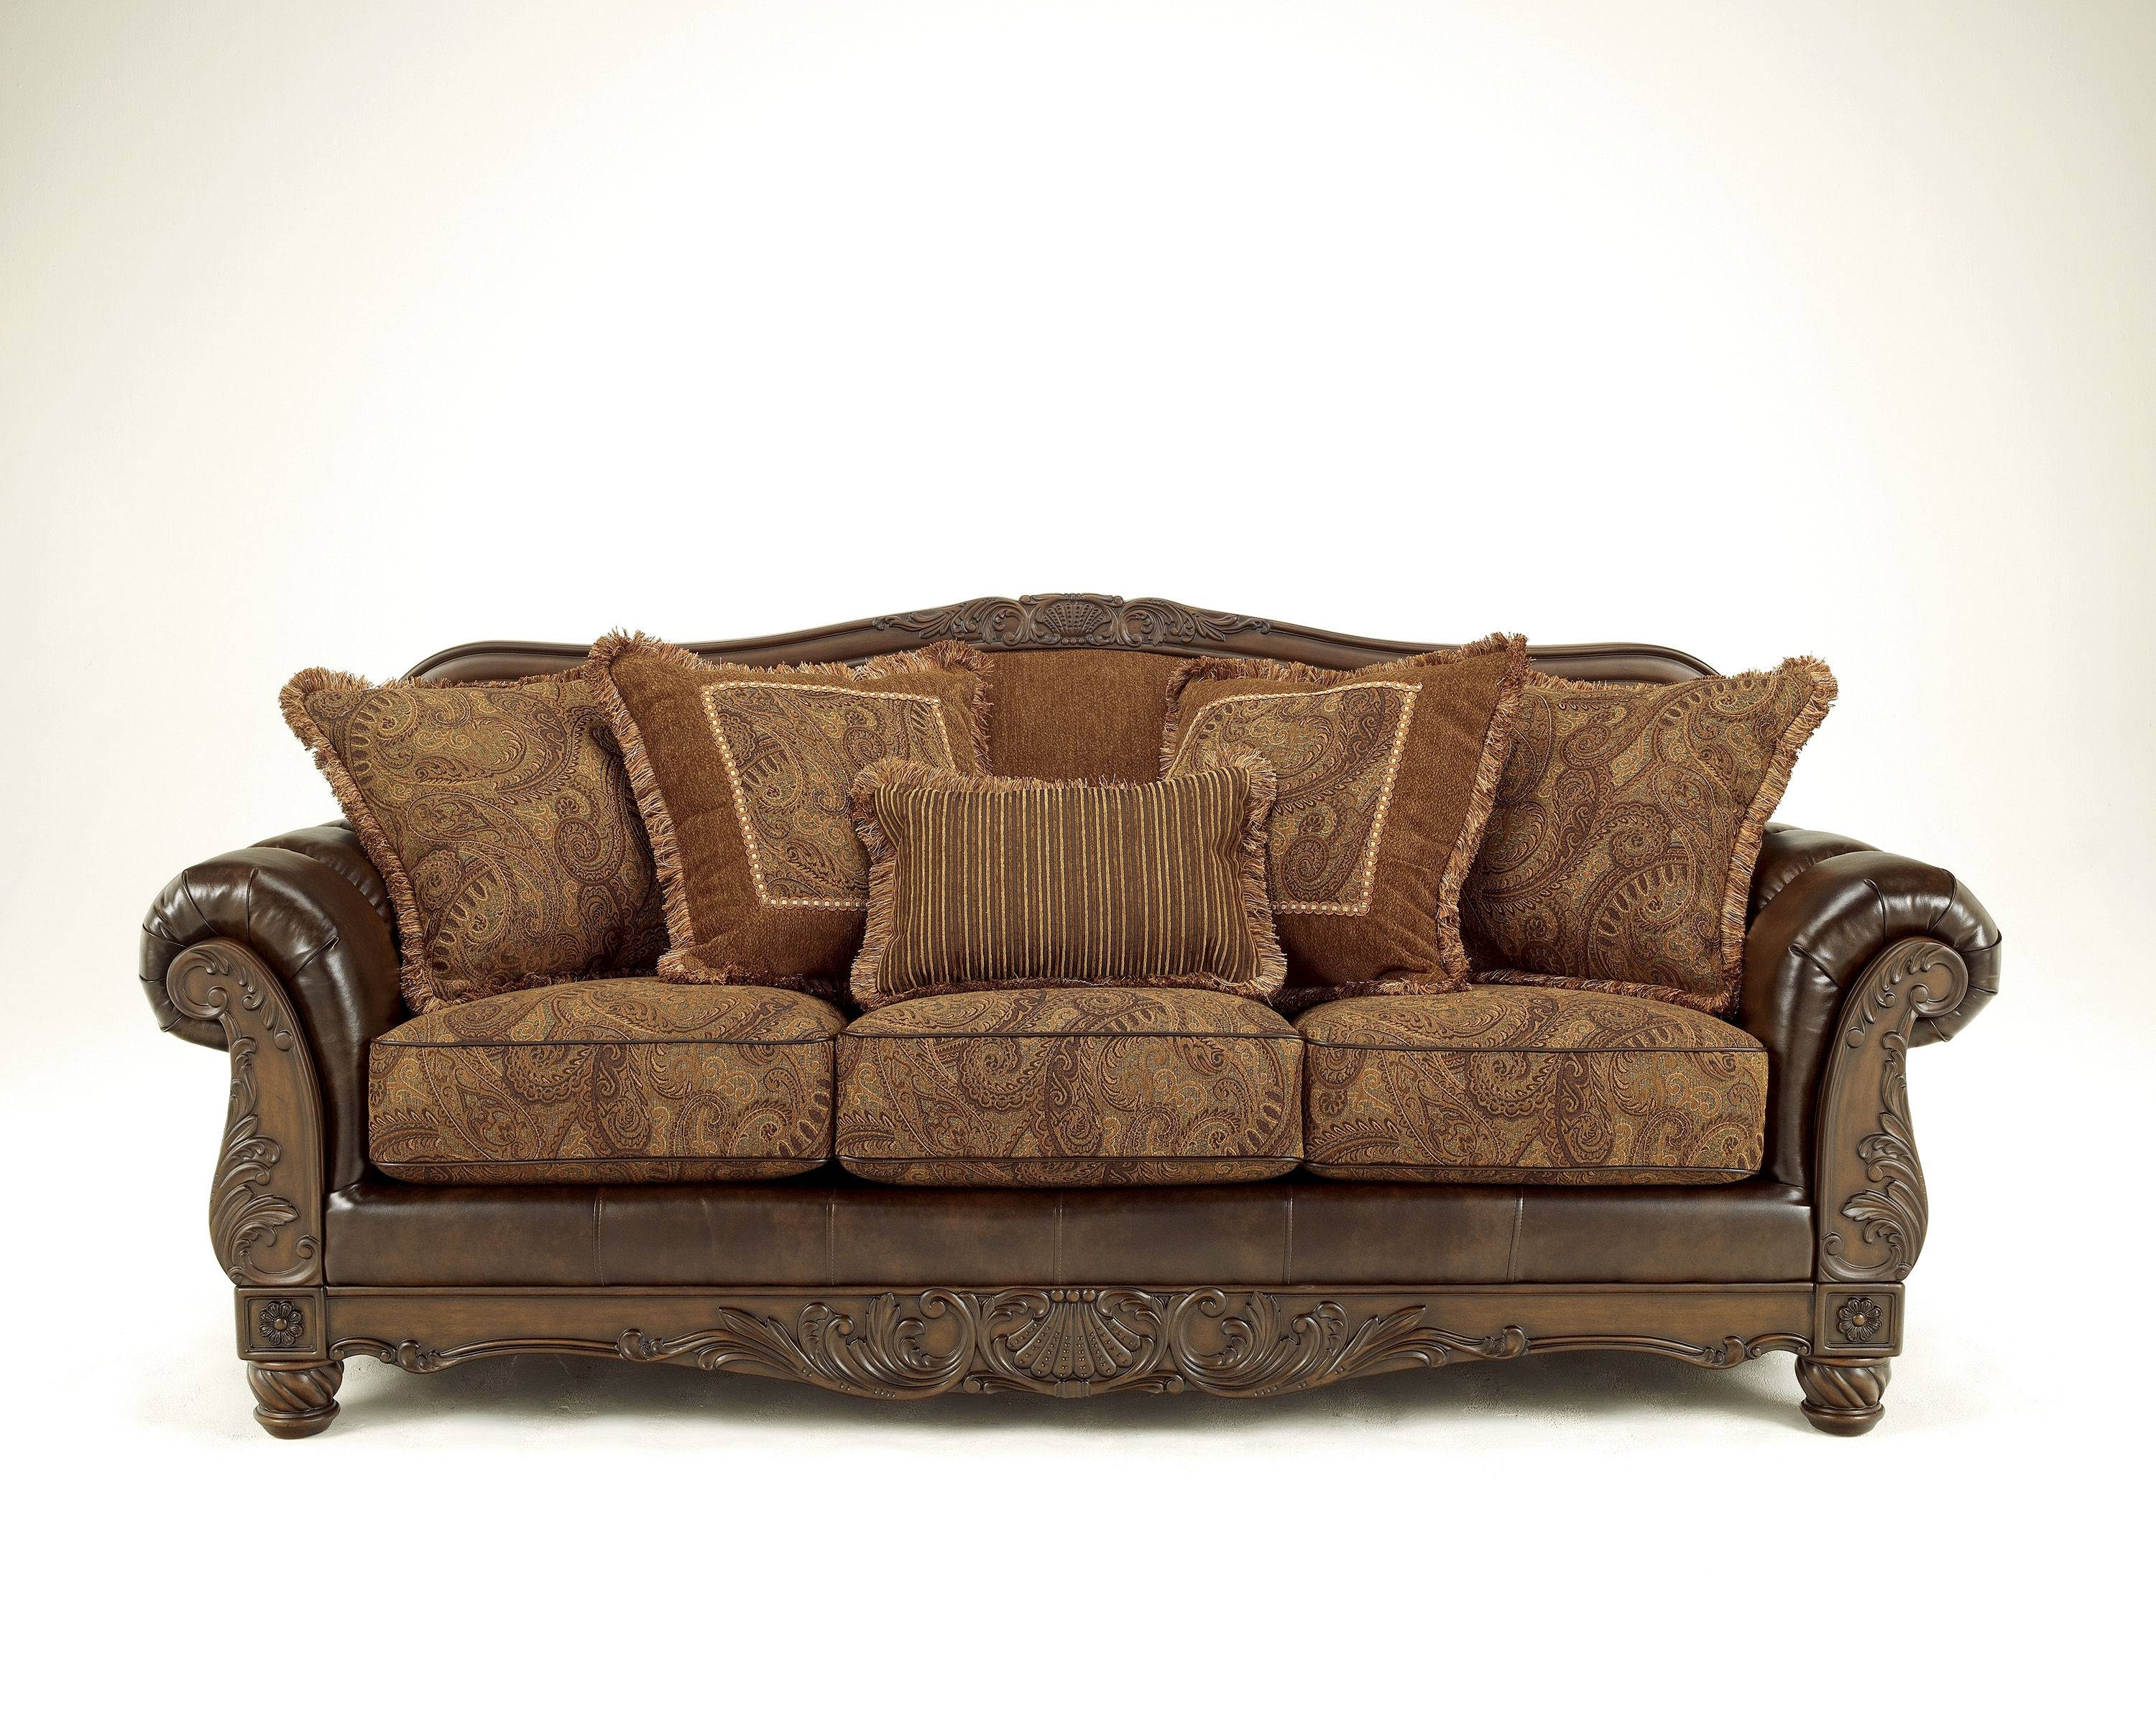 Fresco Durablend Traditional Antique Fabric Sofa | Living Rooms intended for Antique Sofa Chairs (Image 14 of 30)